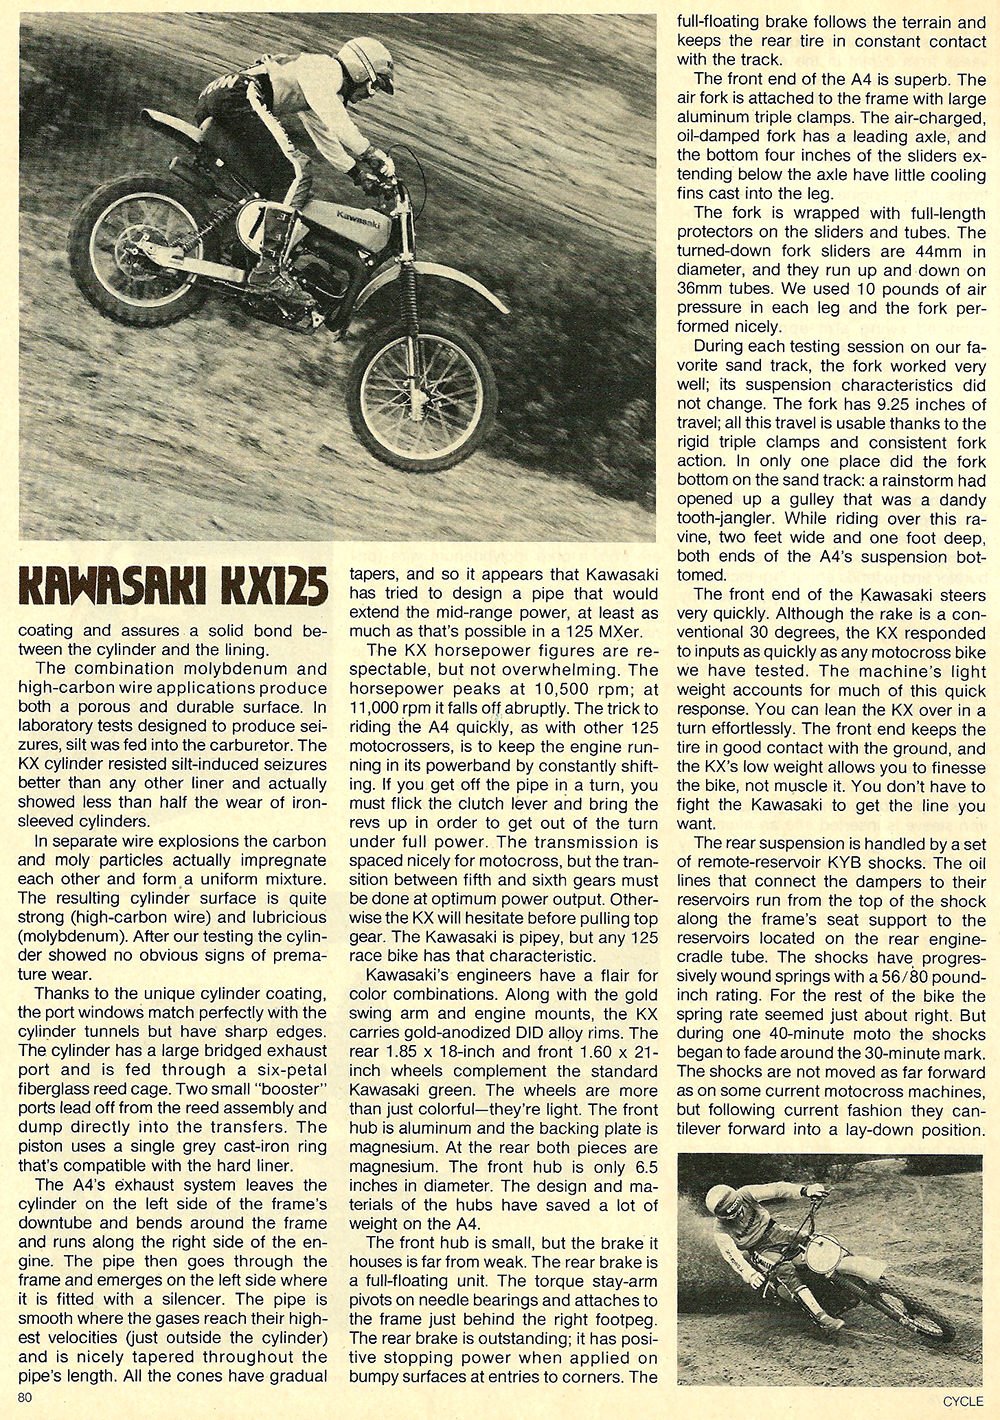 1978 Kawasaki KX125 A4 road test 05.jpg